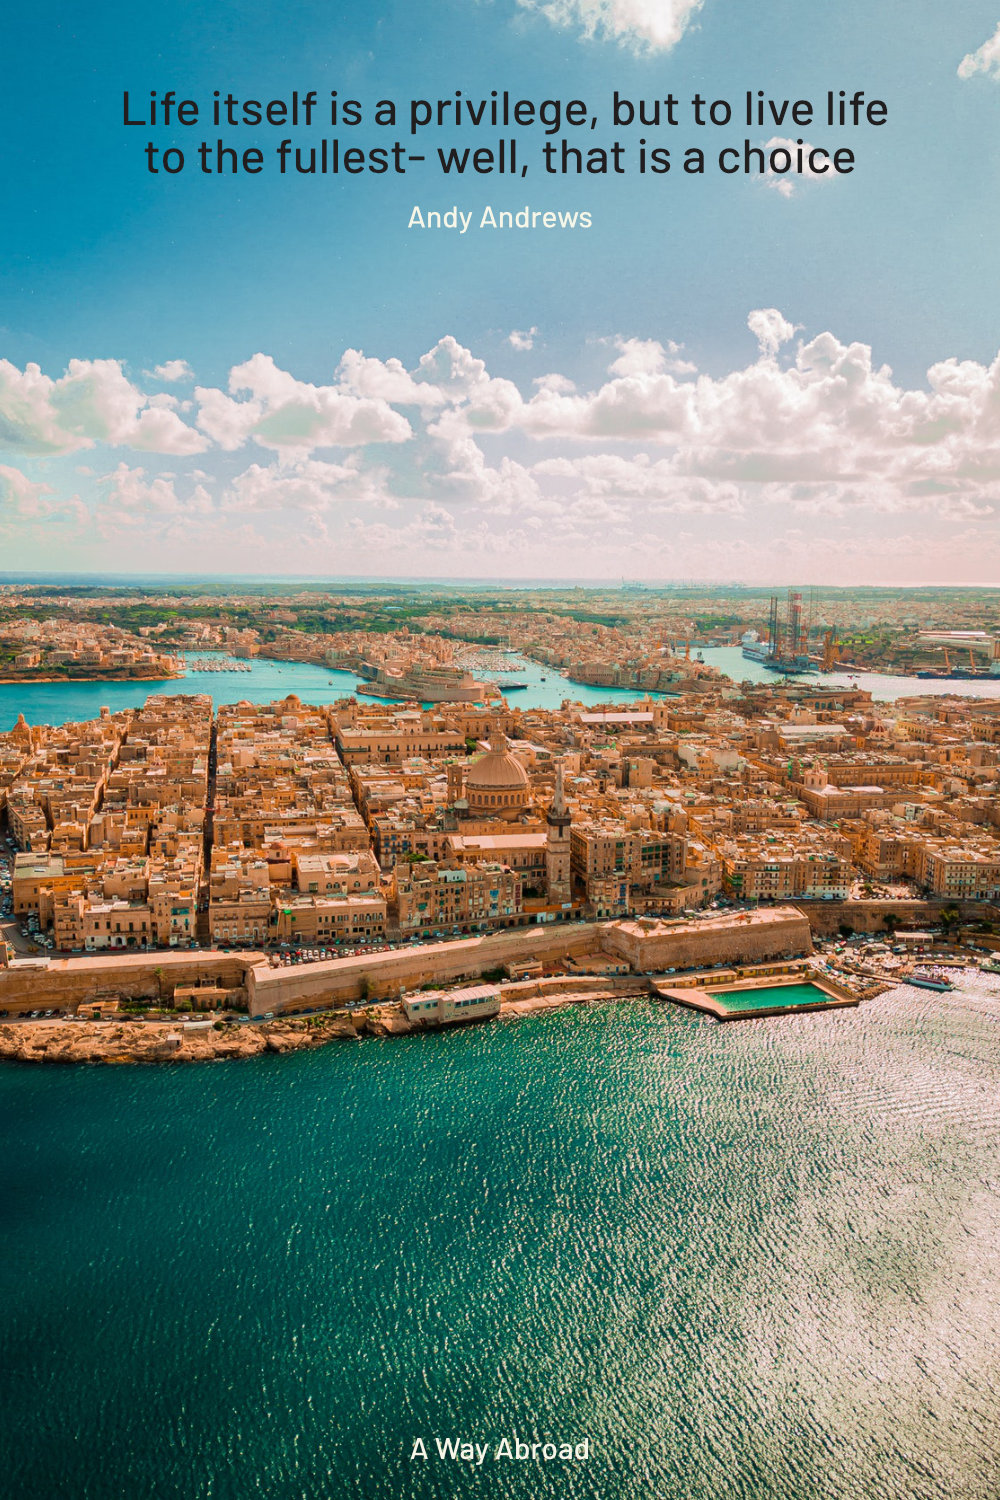 Beautiful Malta with brick buildings from above with the water all around